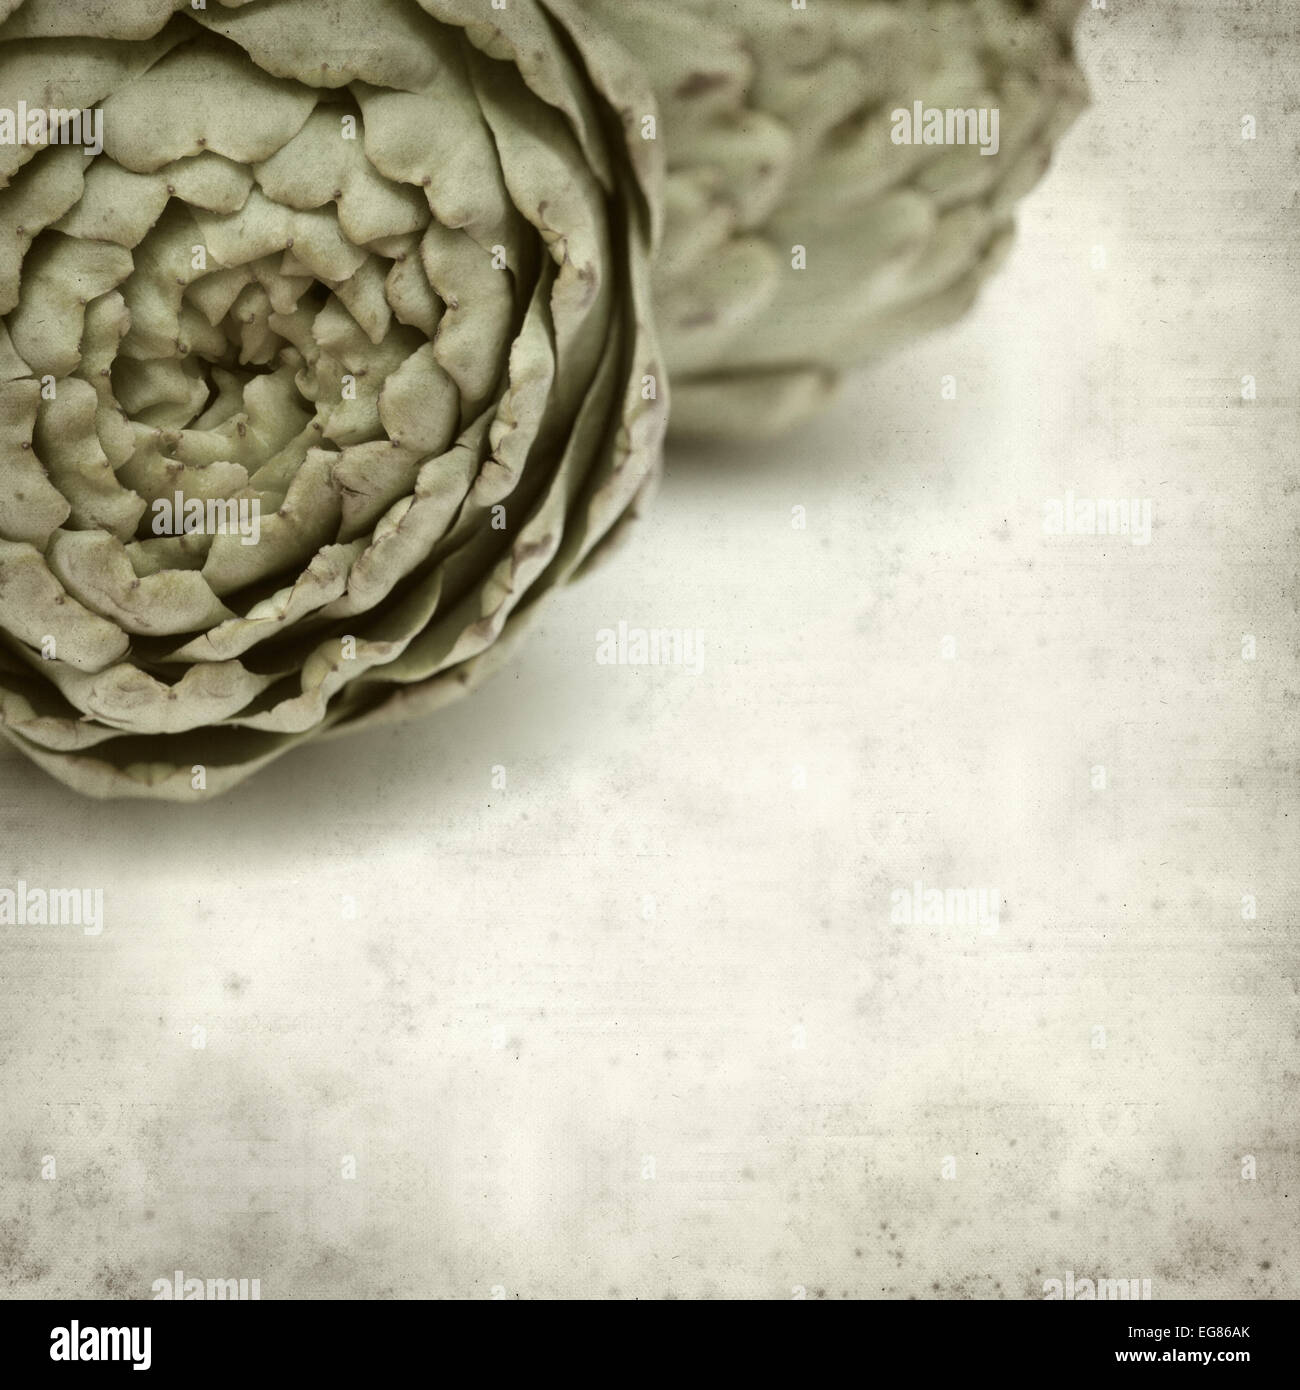 textured old paper background with artichoke - Stock Image